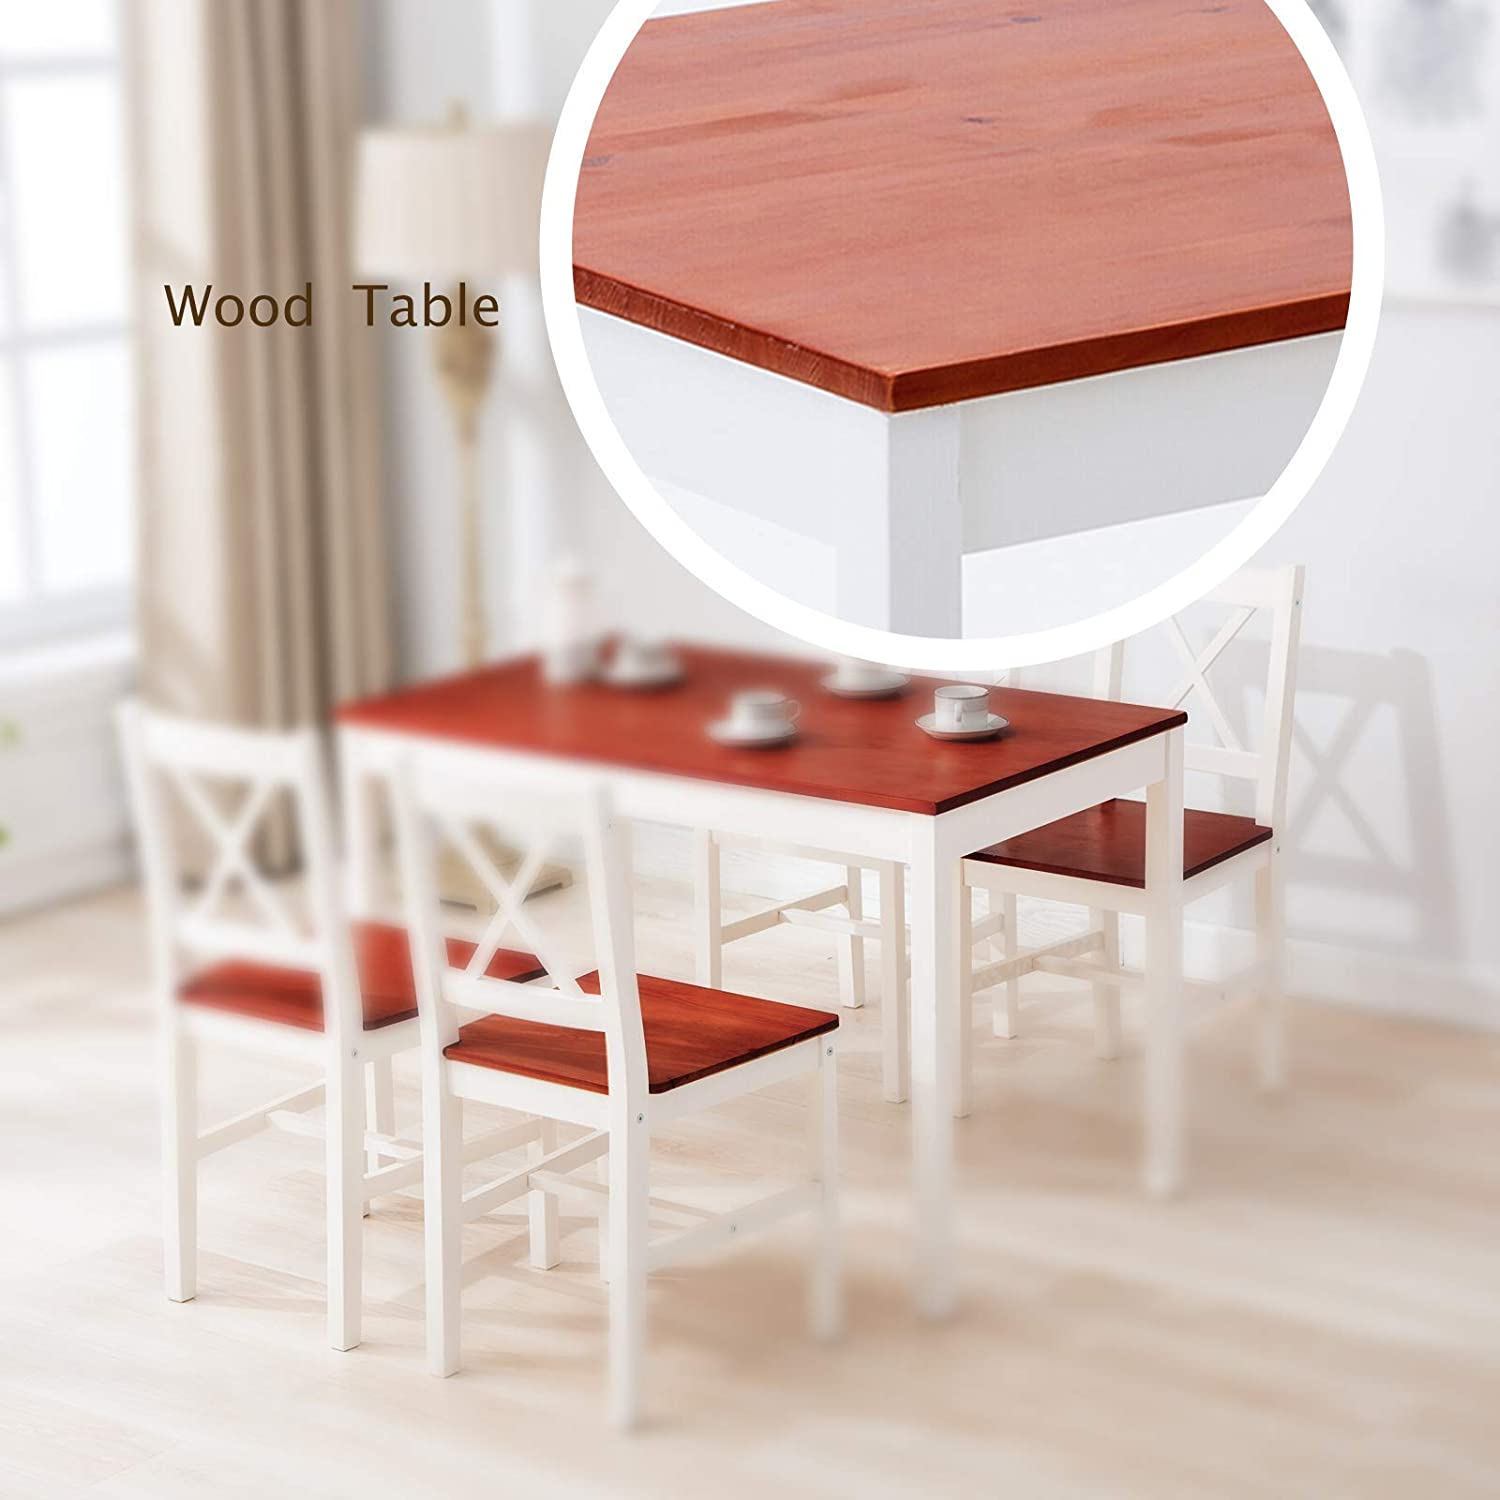 mecor 9 Piece Kitchen Dining Table Chairs Set, 9 Wood Chairs Dinette Table  Kitchen Room Furniture, Red